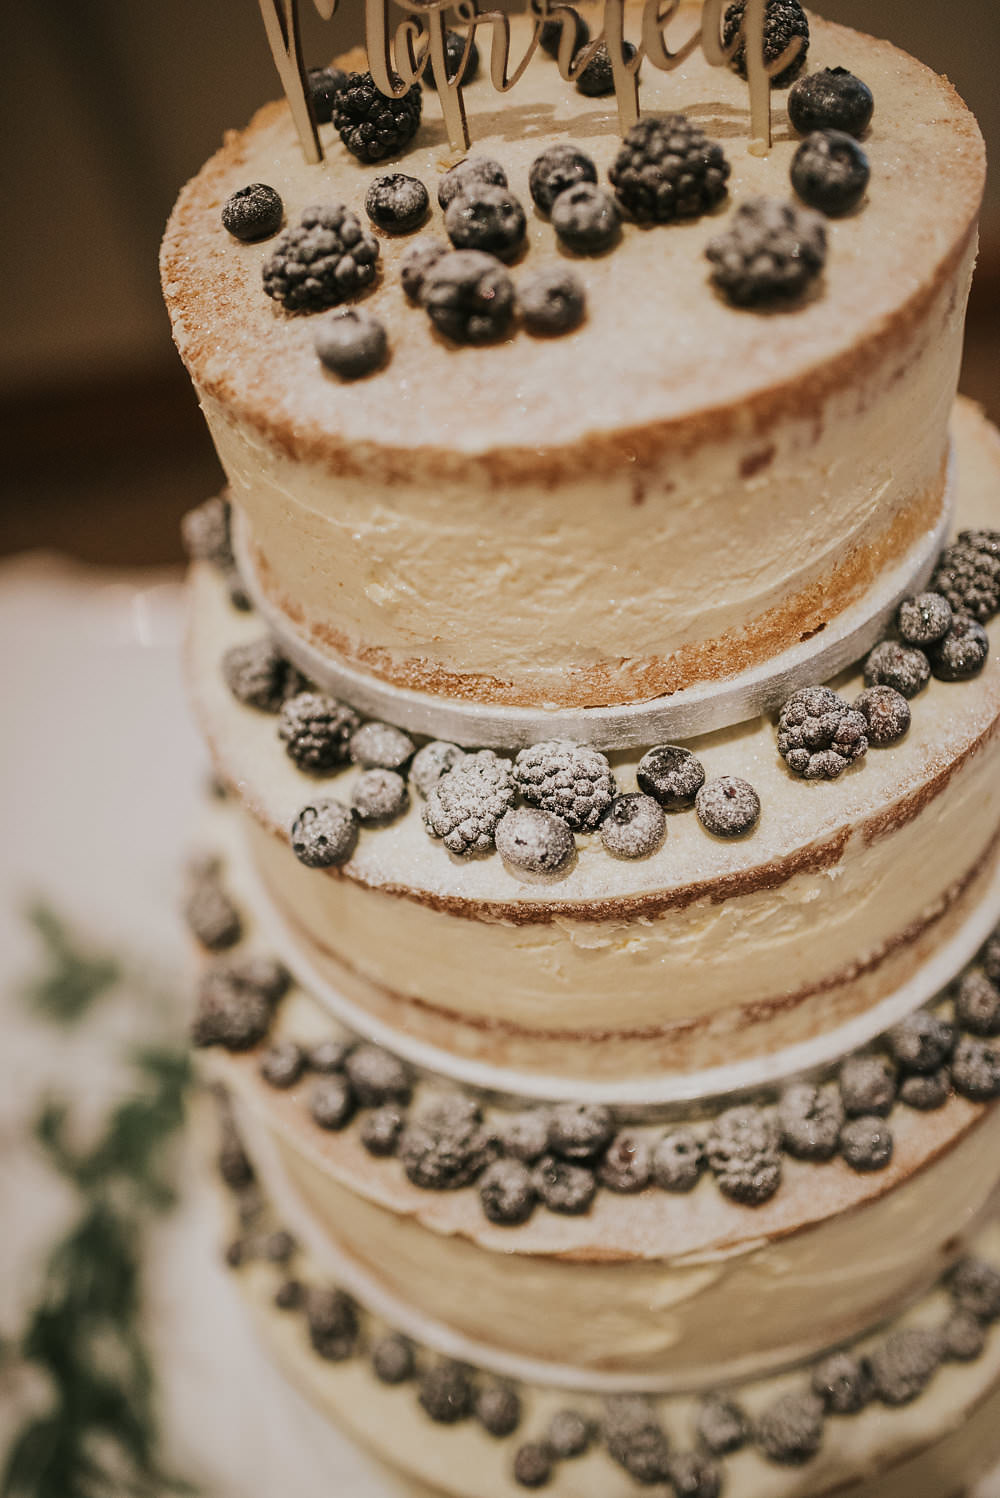 Naked Cake Topper Laser Cut Wood Berries Macdonald Houston Hotel Wedding Martin Venherm Photography